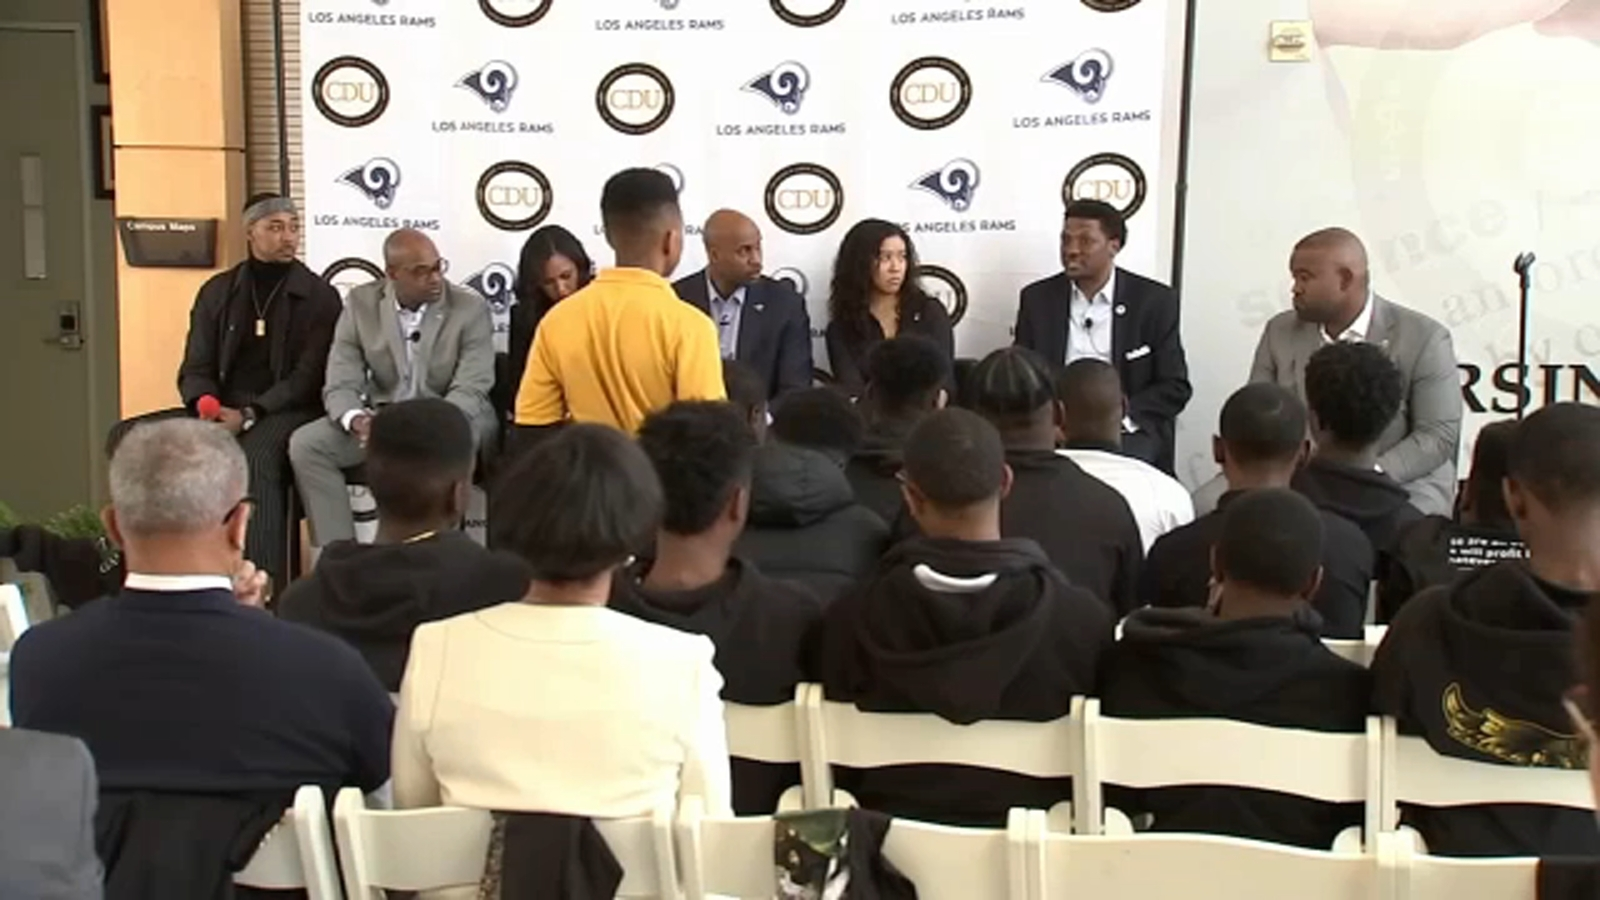 Black History Month: Rams executives inspire students at Charles Drew University